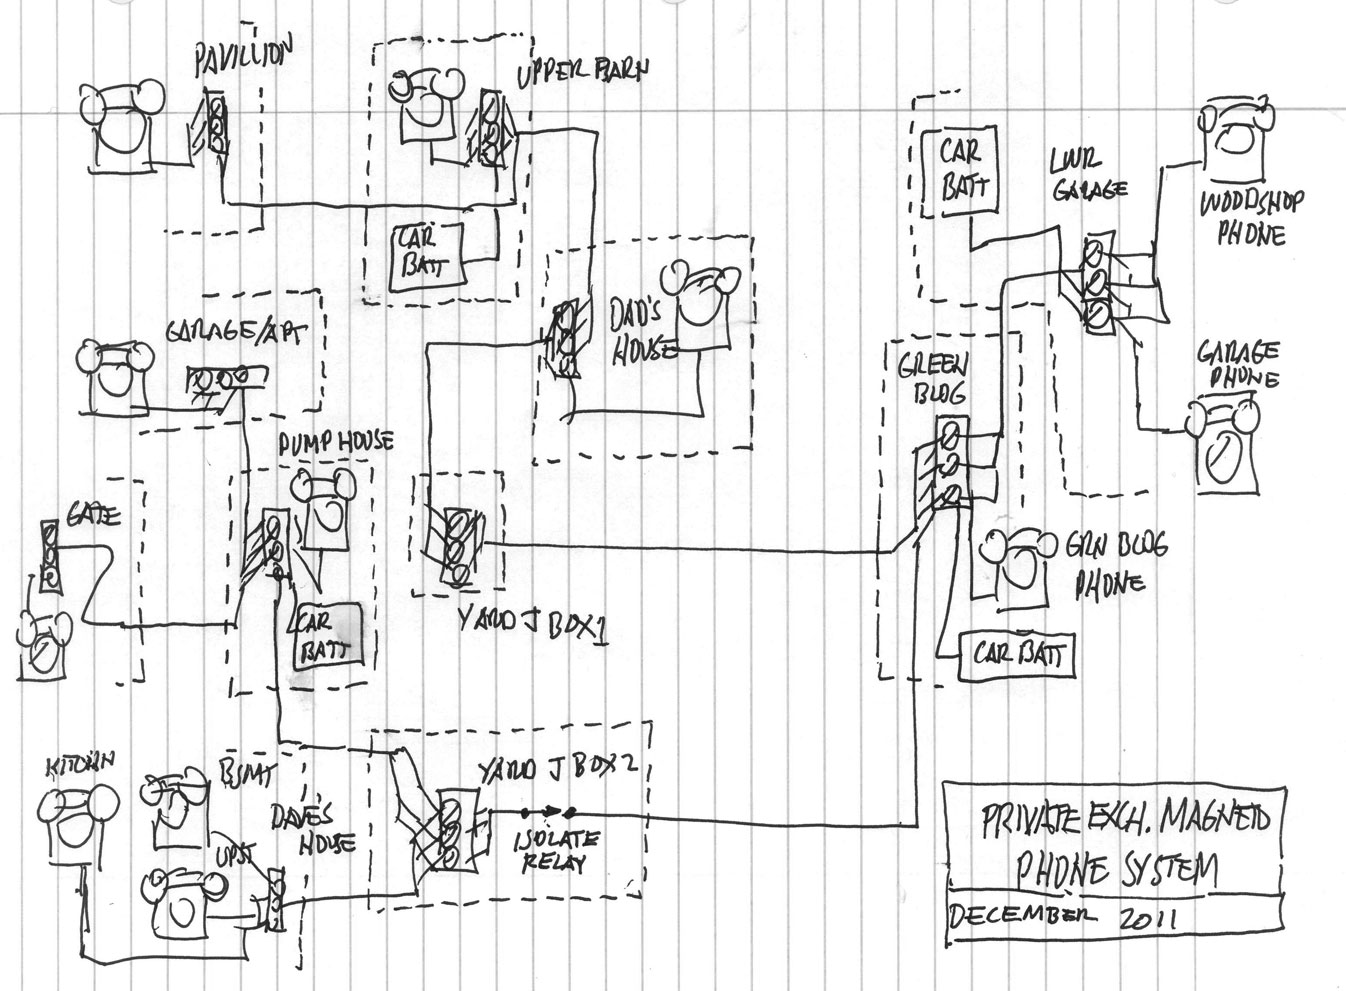 phonesysdiag leich phone Residential Telephone Wiring Diagram at soozxer.org